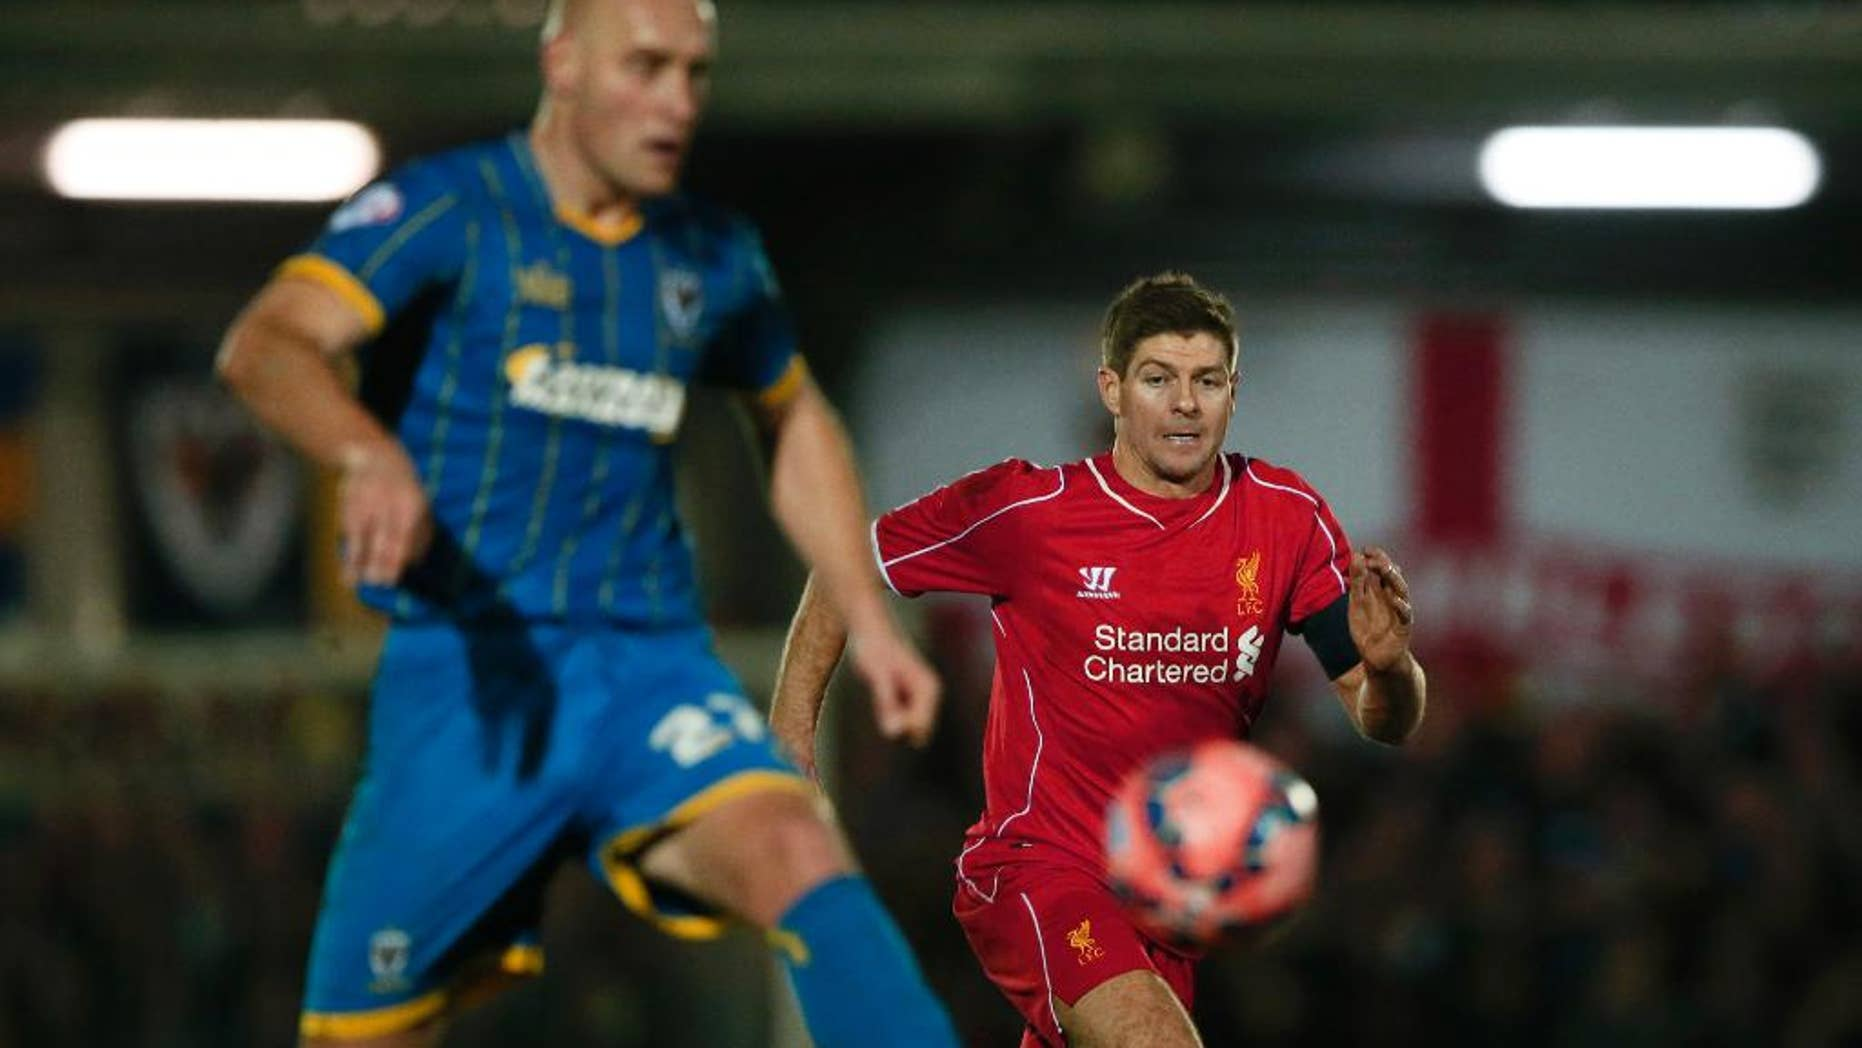 Liverpool's Steven Gerrard, right watches as =AFC Wimbledon's Adam Barratt passes back to his goalkeeper during their English FA Cup third round soccer match between AFC Wimbledon and Liverpool in Kingston, London, Monday, Jan.  5, 2015 . (AP Photo/Alastair Grant)